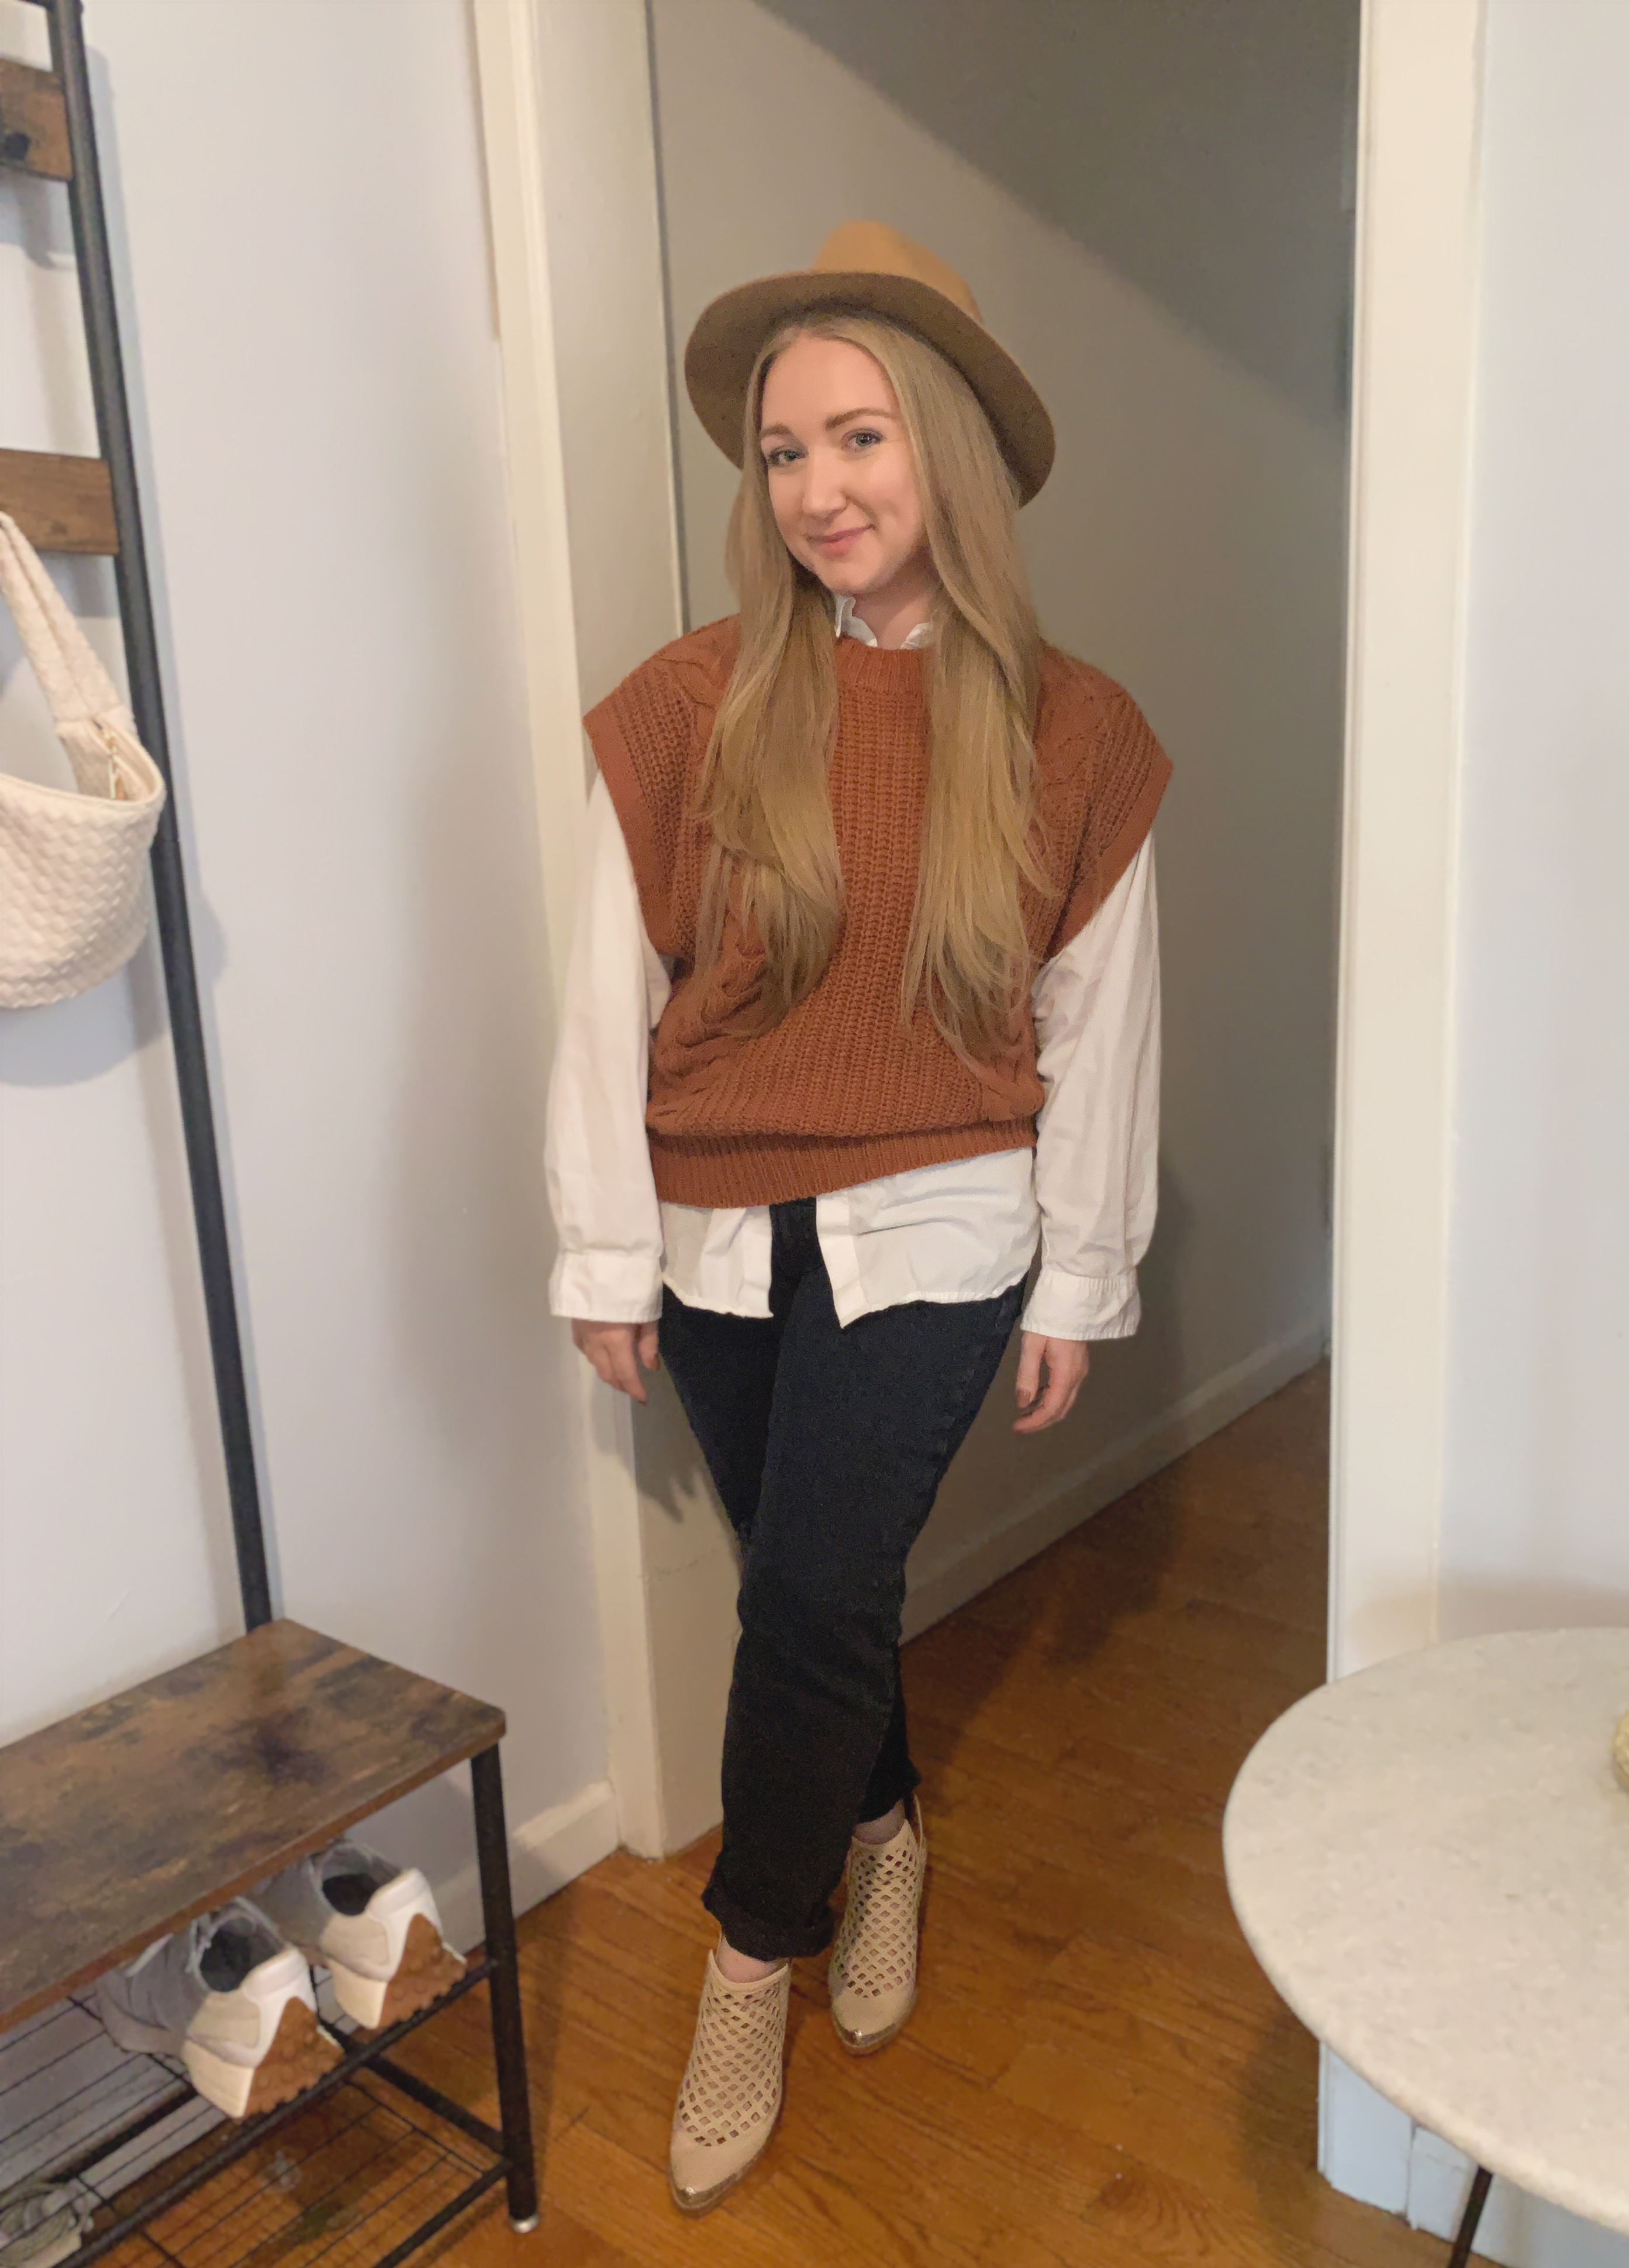 Sweater vests had a major comeback last spring and they won't be going anywhere this fall. Visit the link to see how I styled one sweater vest 3 ways, using pieces I already had in my wardrobe!